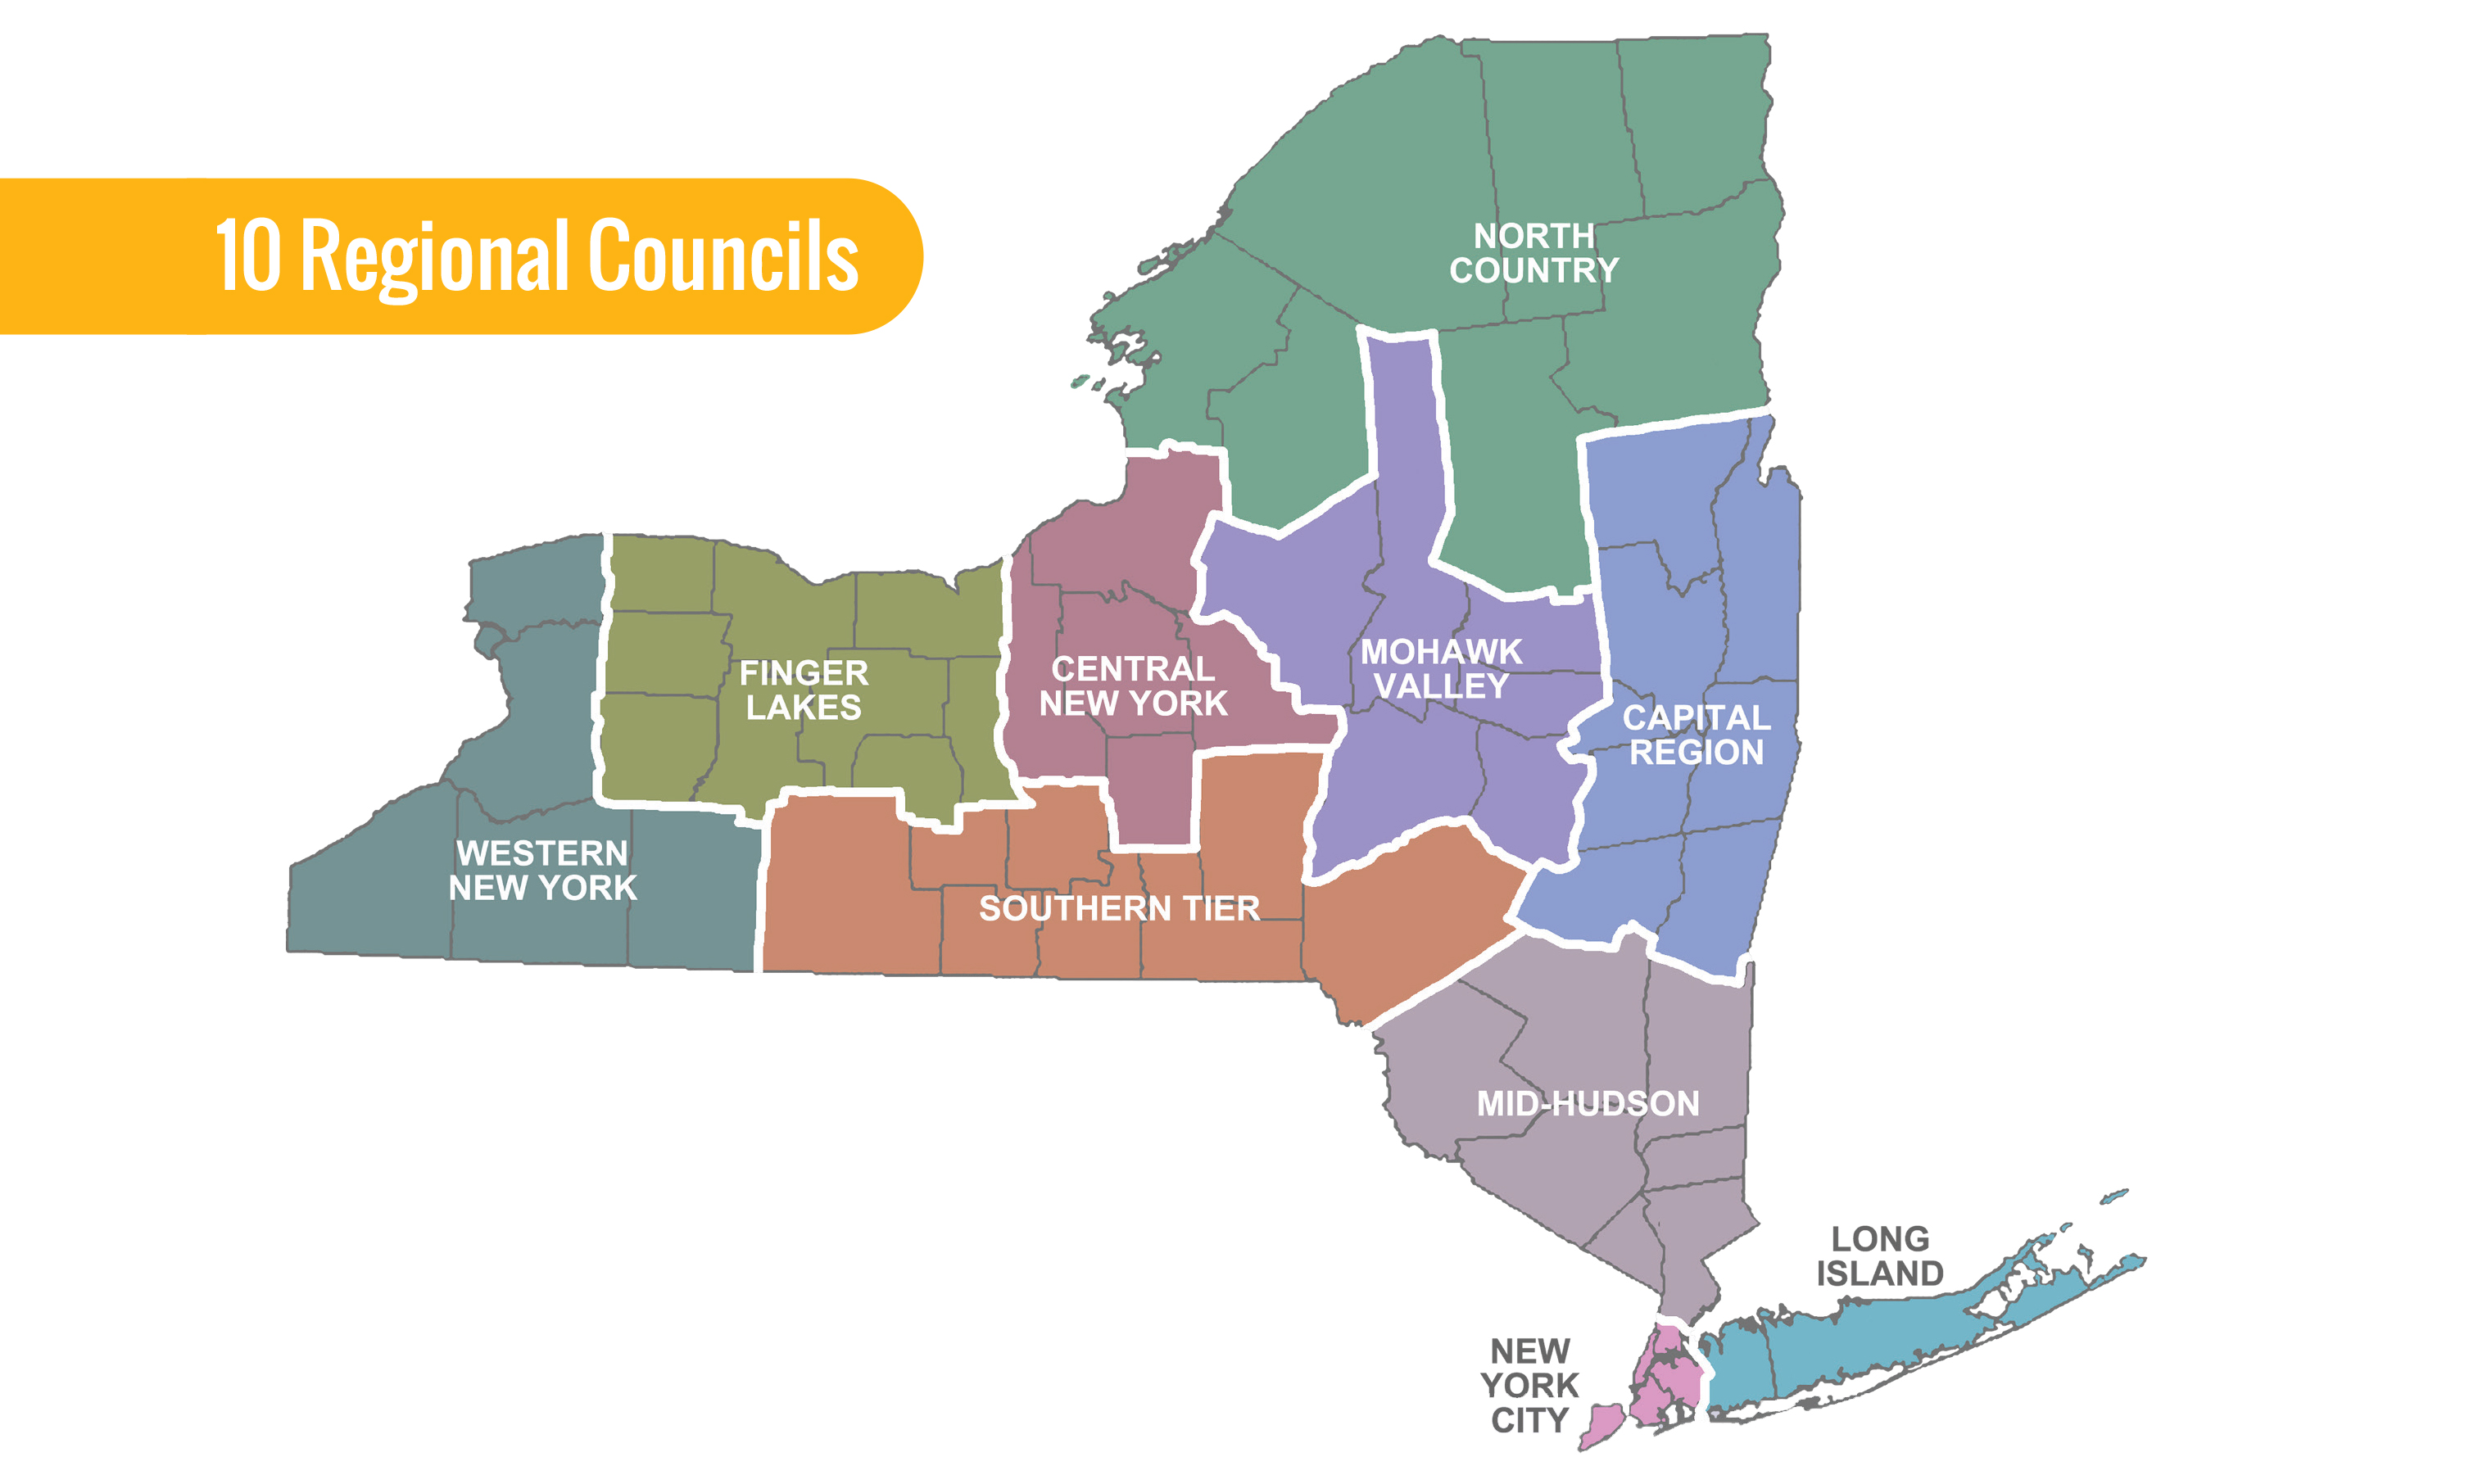 City Map Of New York State.New York State Regional Economic Development Initiative Arts Nys